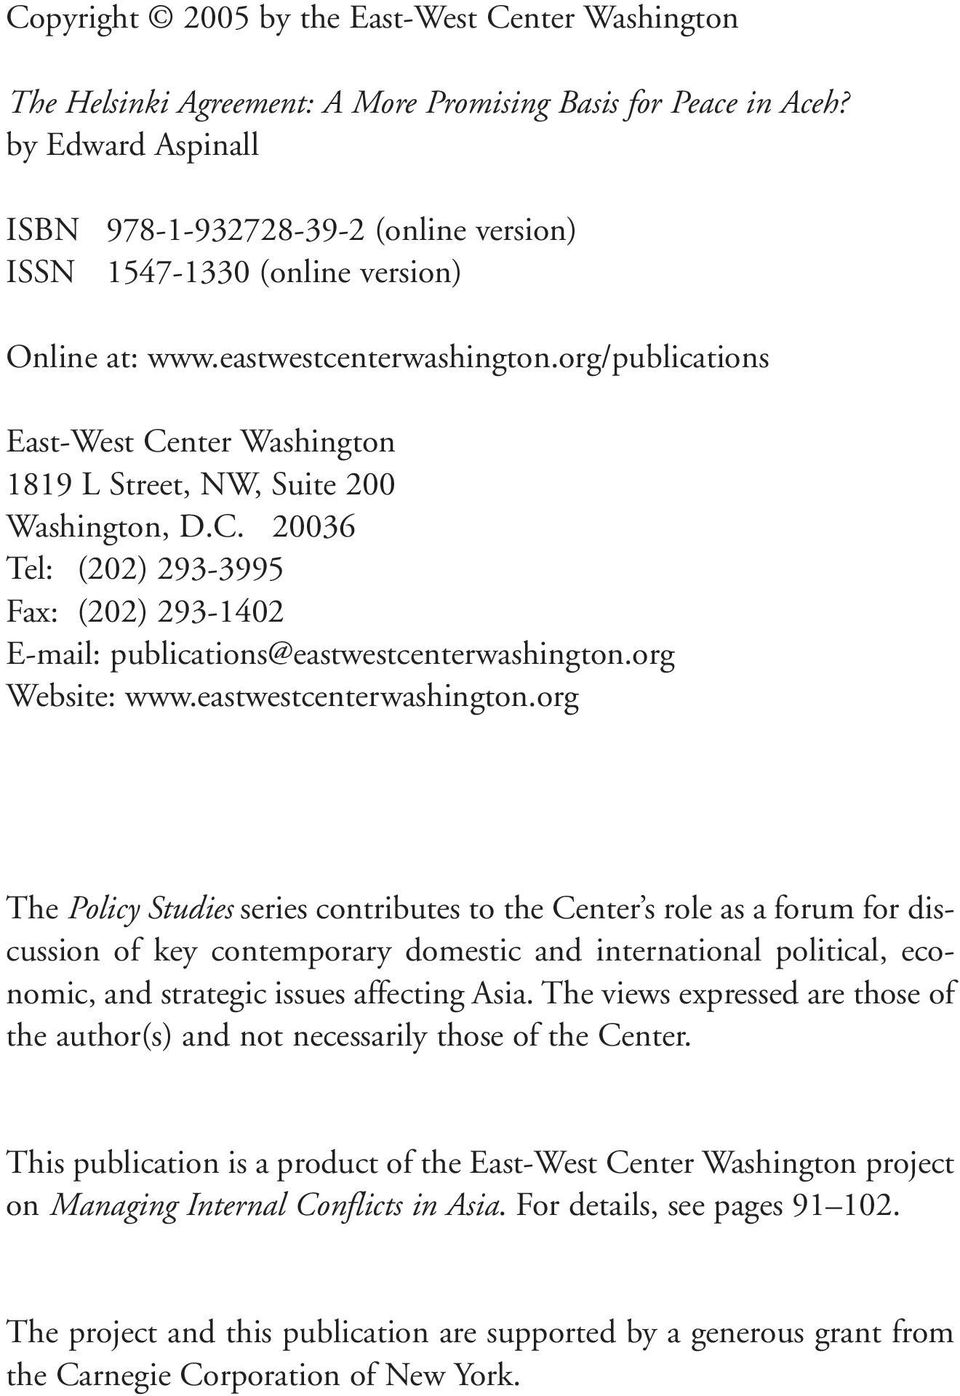 org/publications East-West Center Washington 1819 L Street, NW, Suite 200 Washington, D.C. 20036 Tel: (202) 293-3995 Fax: (202) 293-1402 E-mail: publications@eastwestcenterwashington.org Website: www.